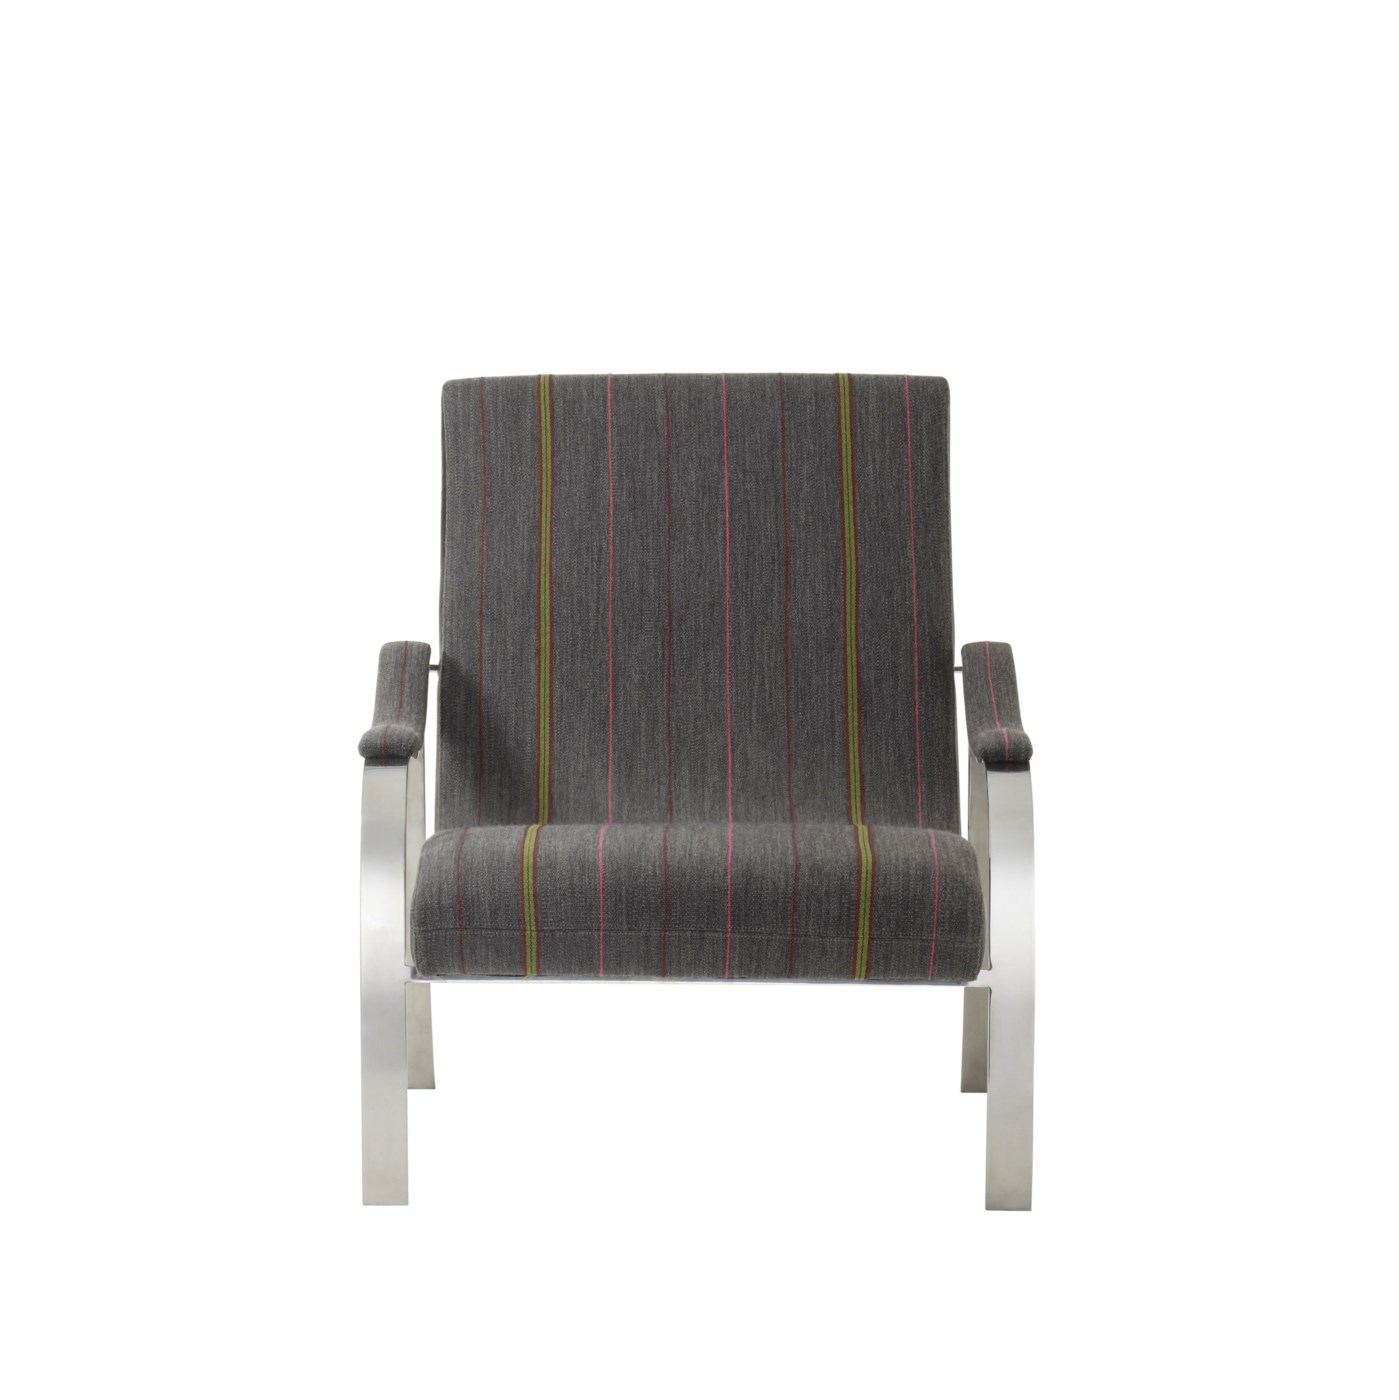 Mantis Lounge Chair - Mick Charcoal  & Destroyed Black Leather